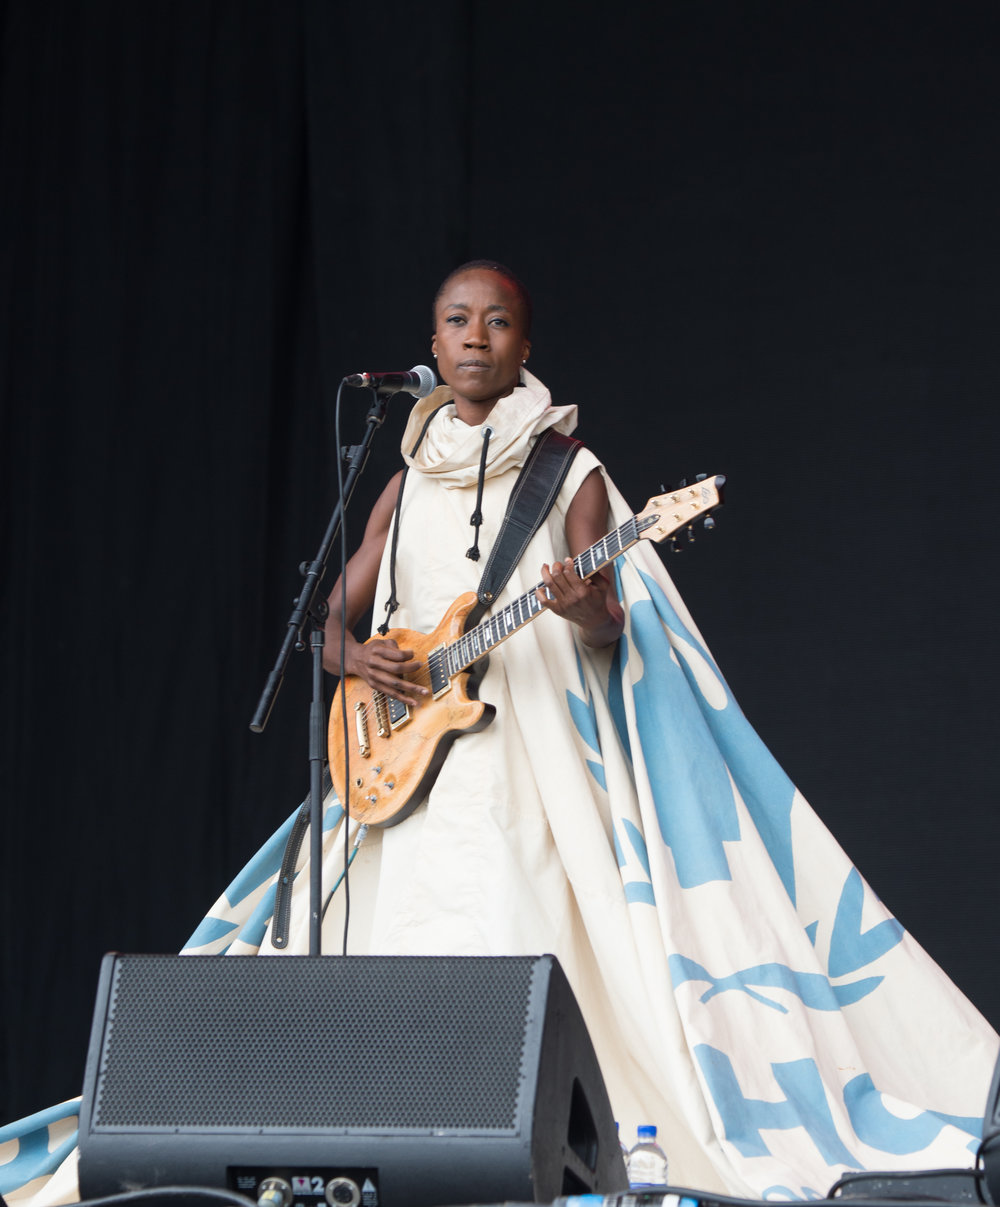 Rokia Traore opening on Pyramid Stage at Glastonbury 2016. Image by kind permission of Getty Images